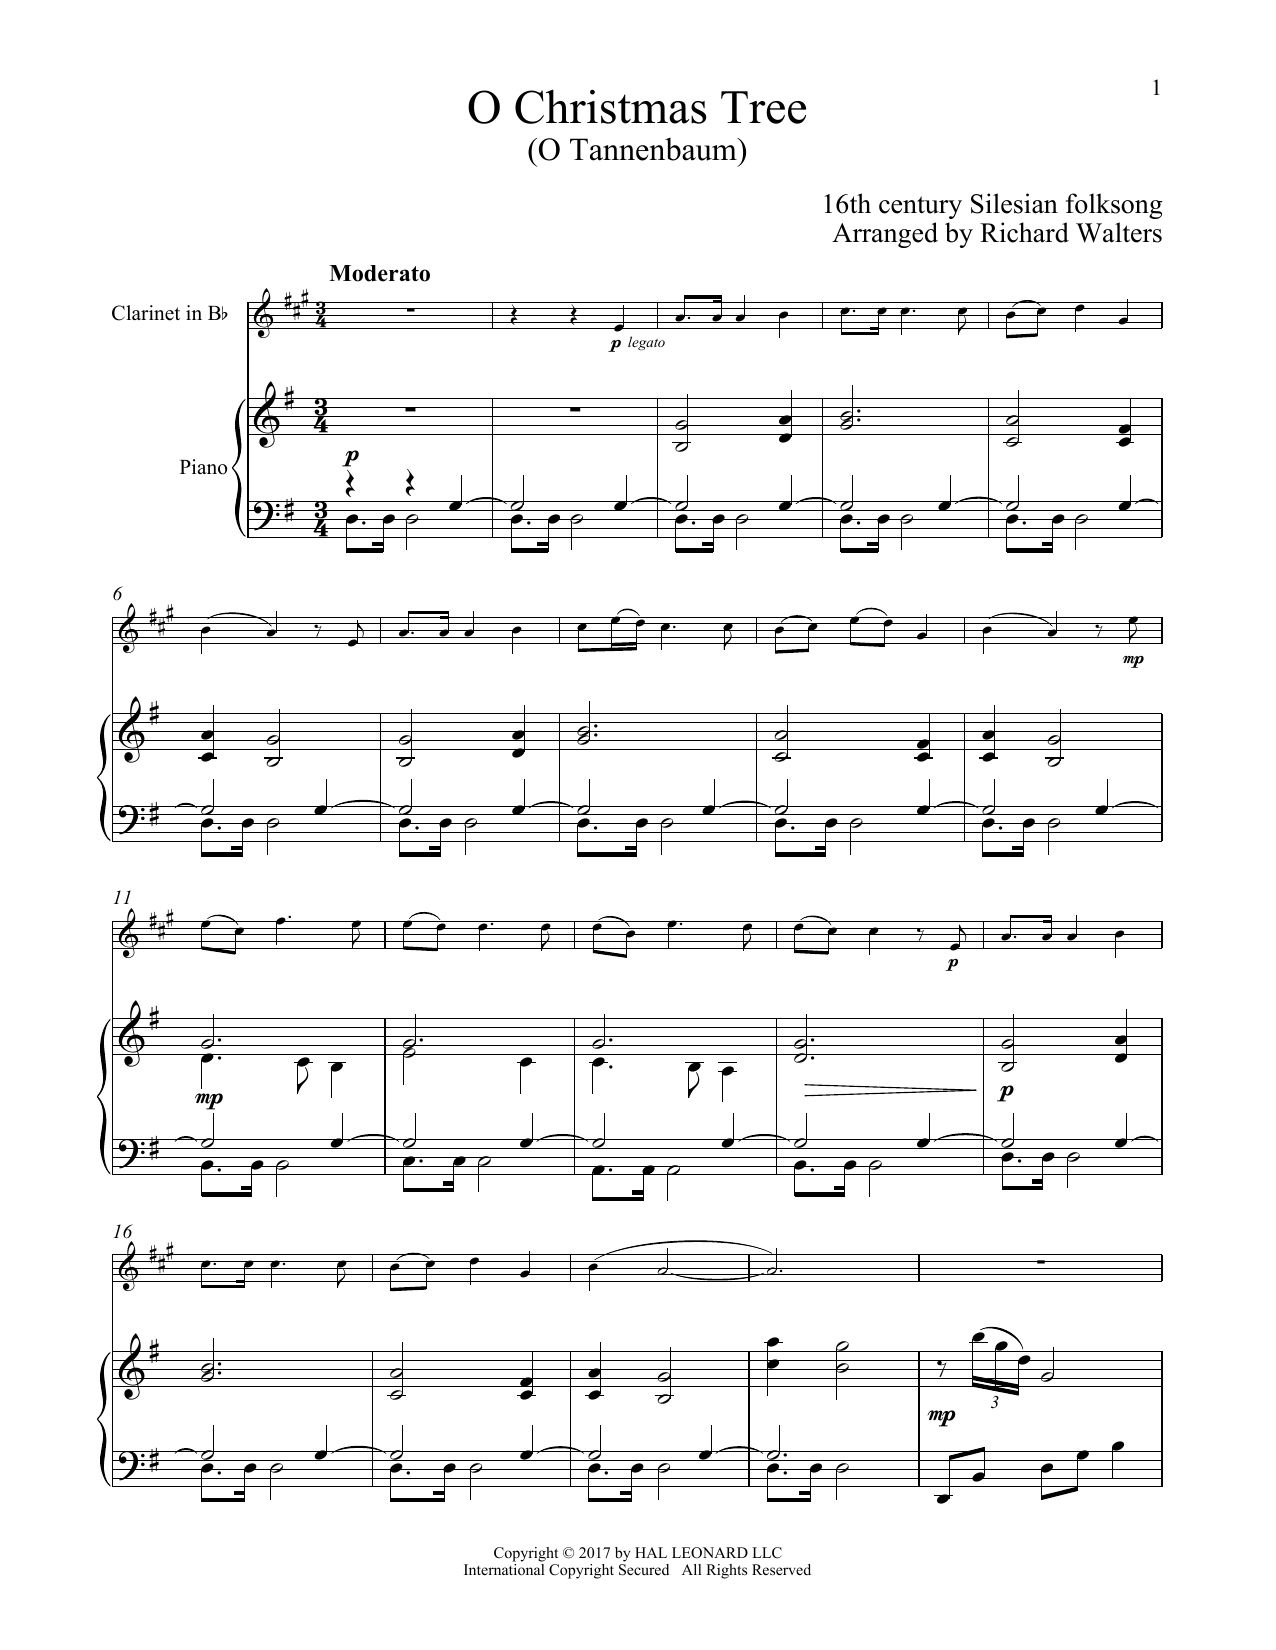 O Christmas Tree - Print Sheet Music Now